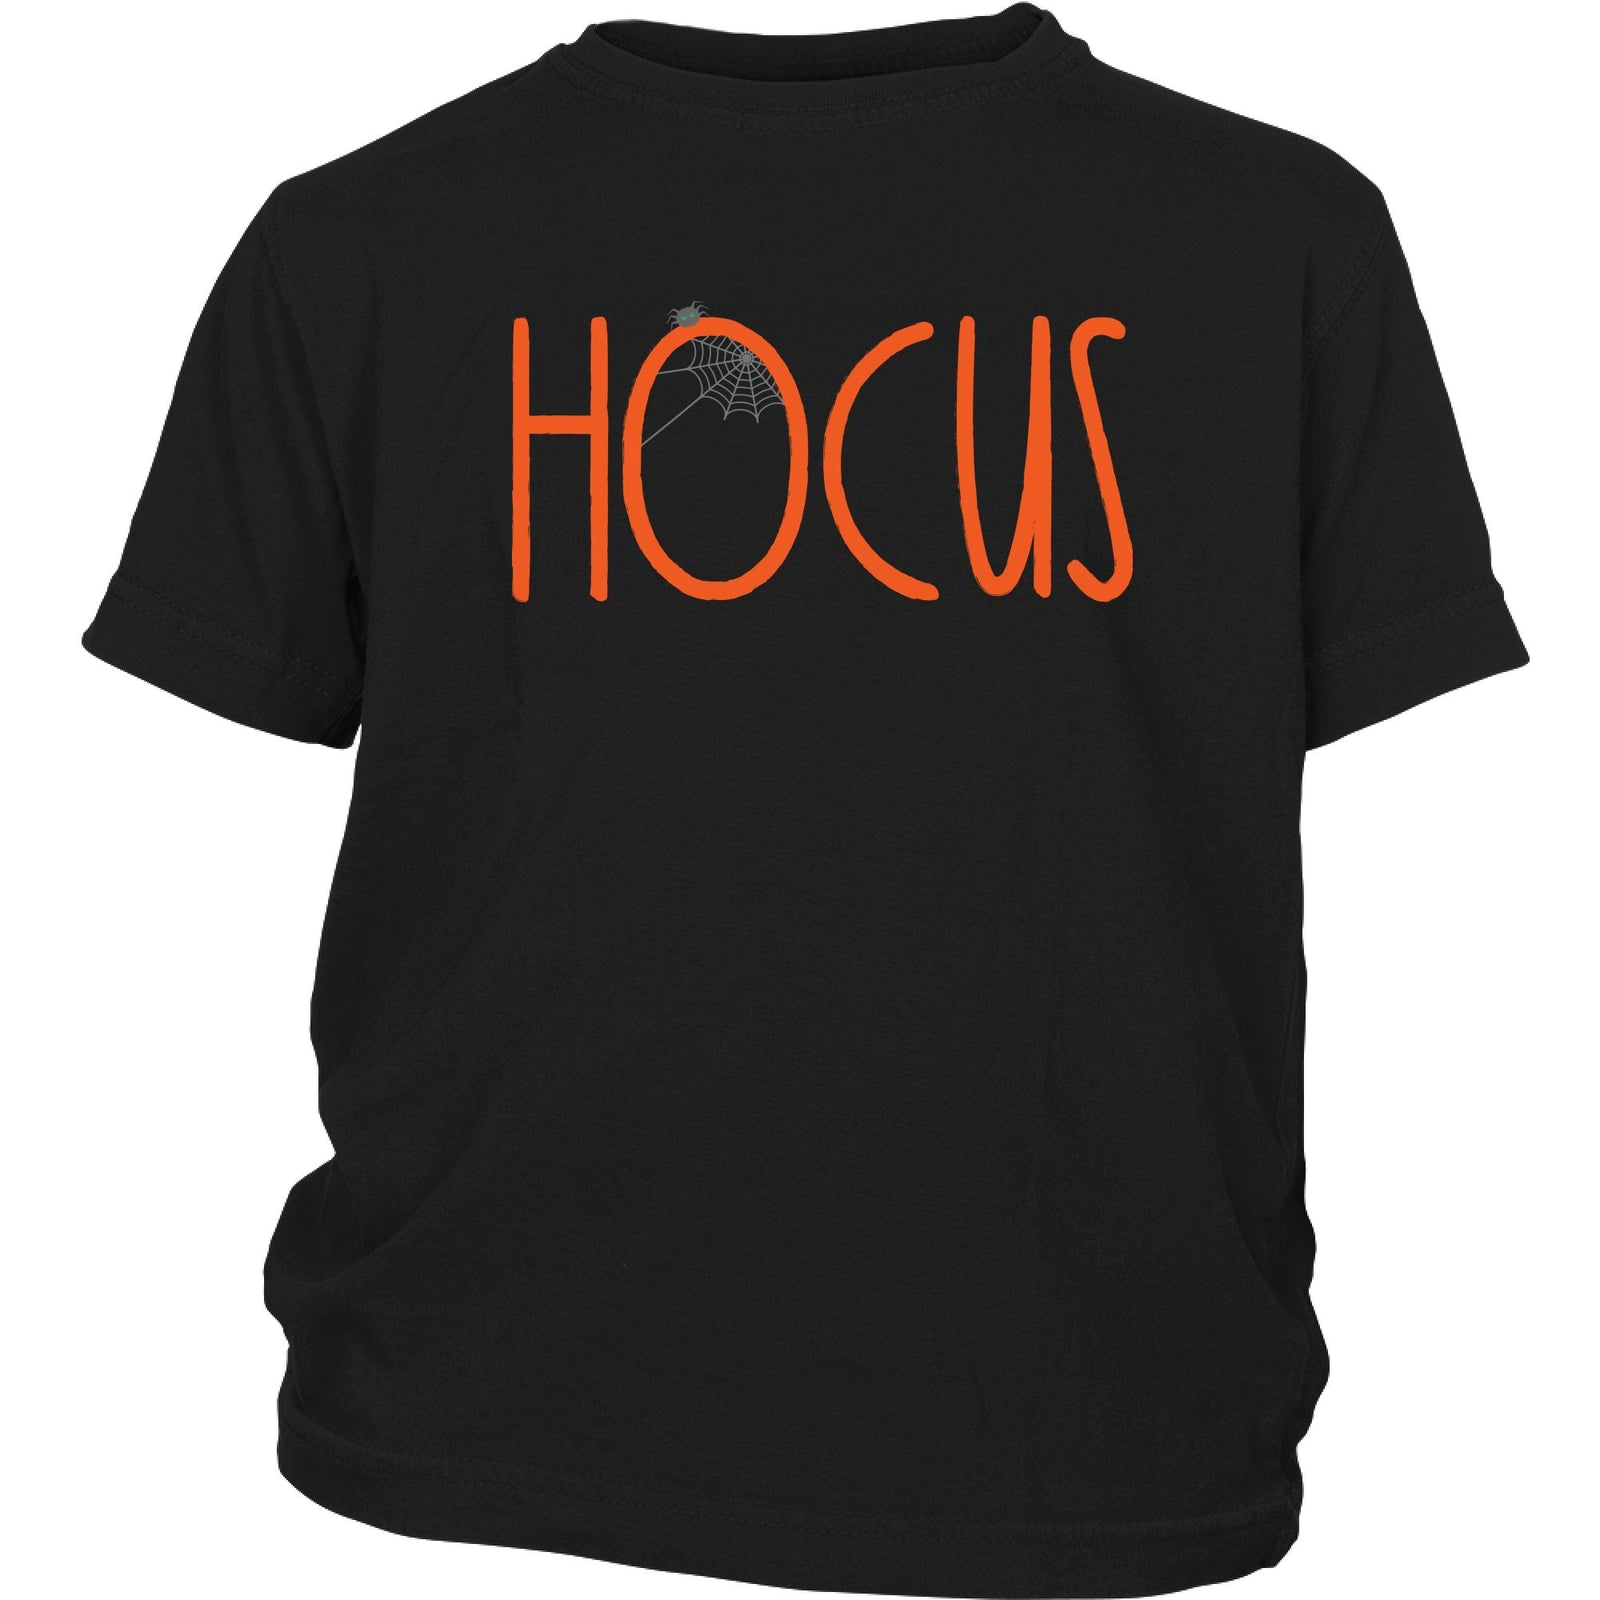 Hocus Pocus Rea Dunn Inspired Kids T-shirts, Matching Sibling Shirts